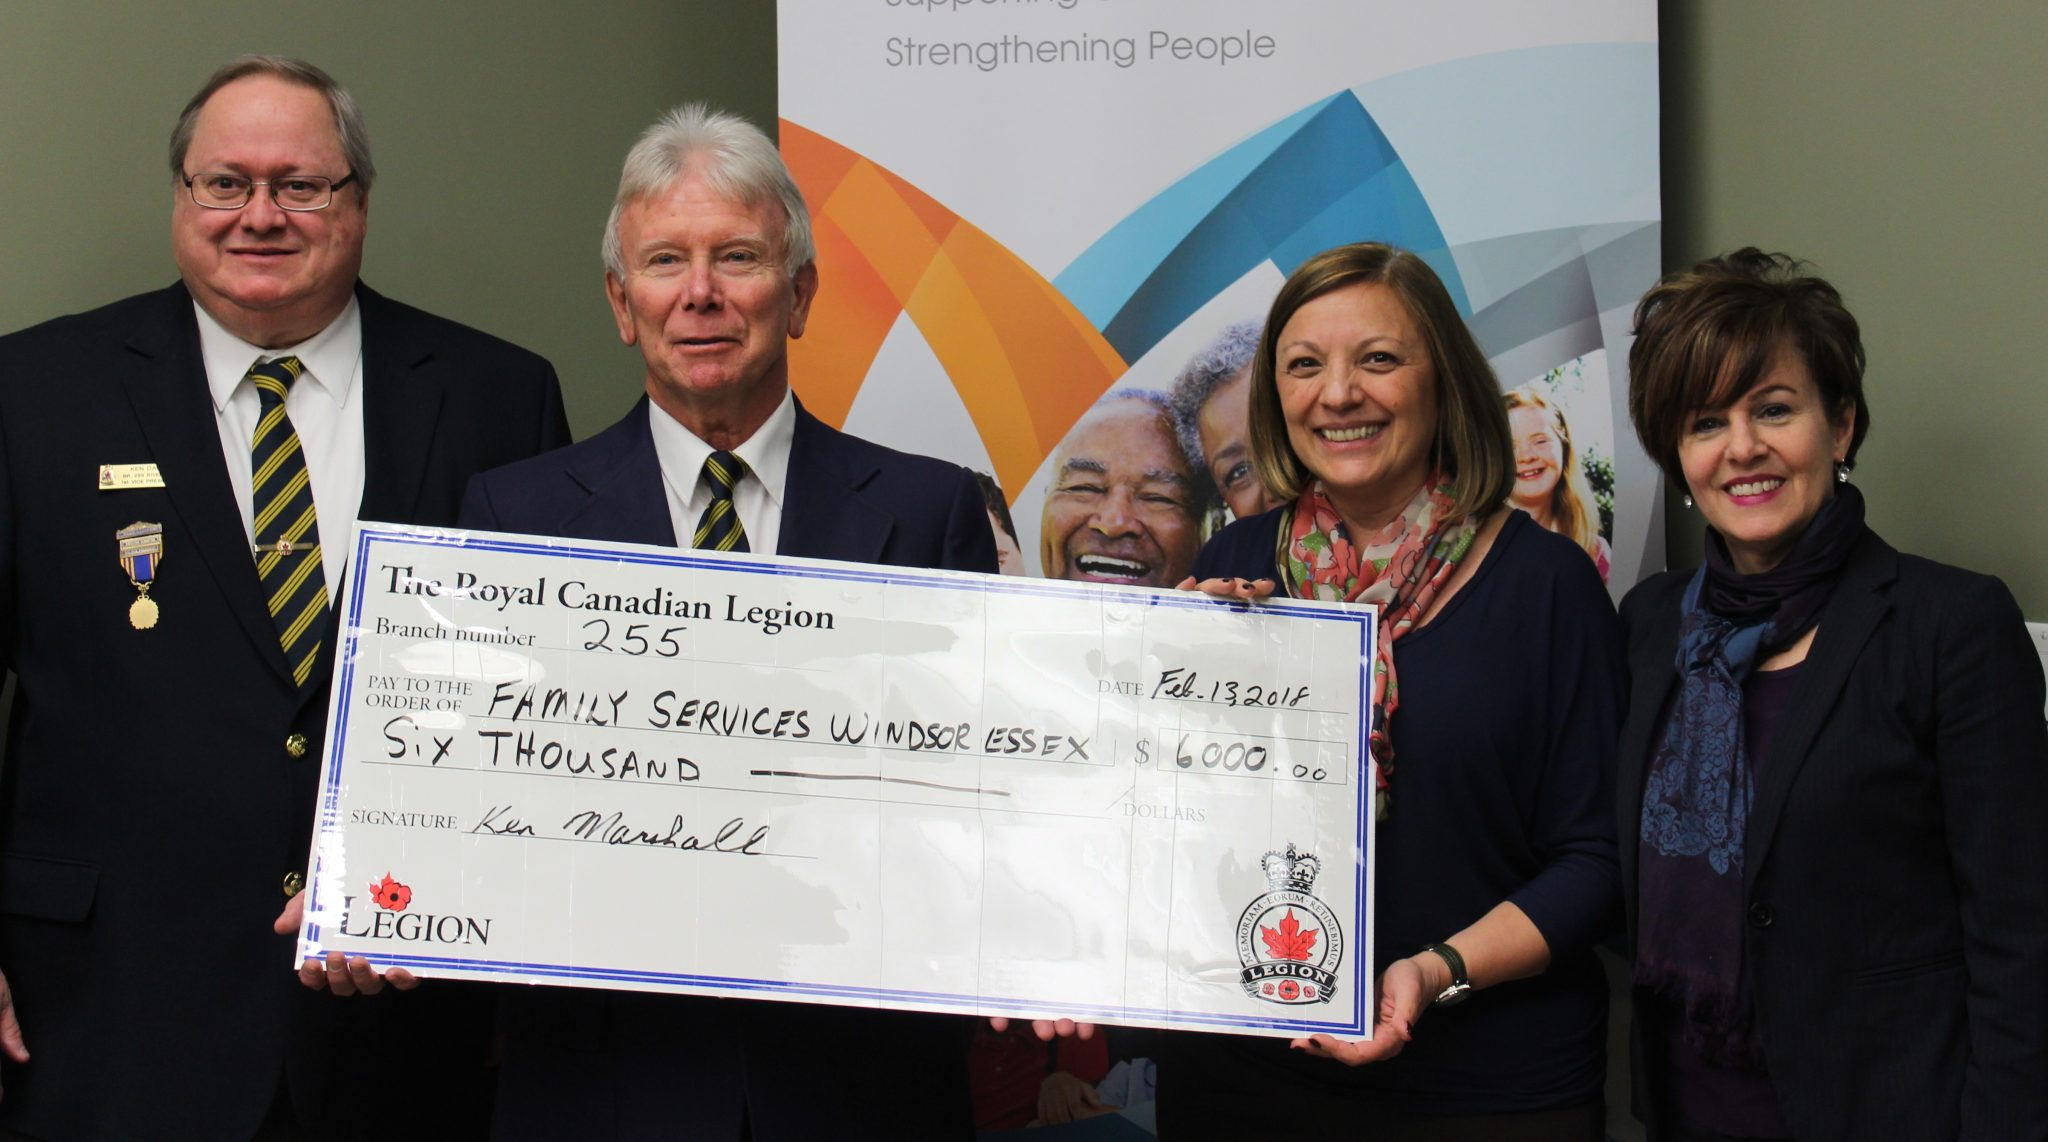 Royal Canadian Legion Members Ken Dault and Ken Marshall holding large $6,000 cheque with Joyce Zuk and Beth Anne Ternovan from Family Services Windsor Essex